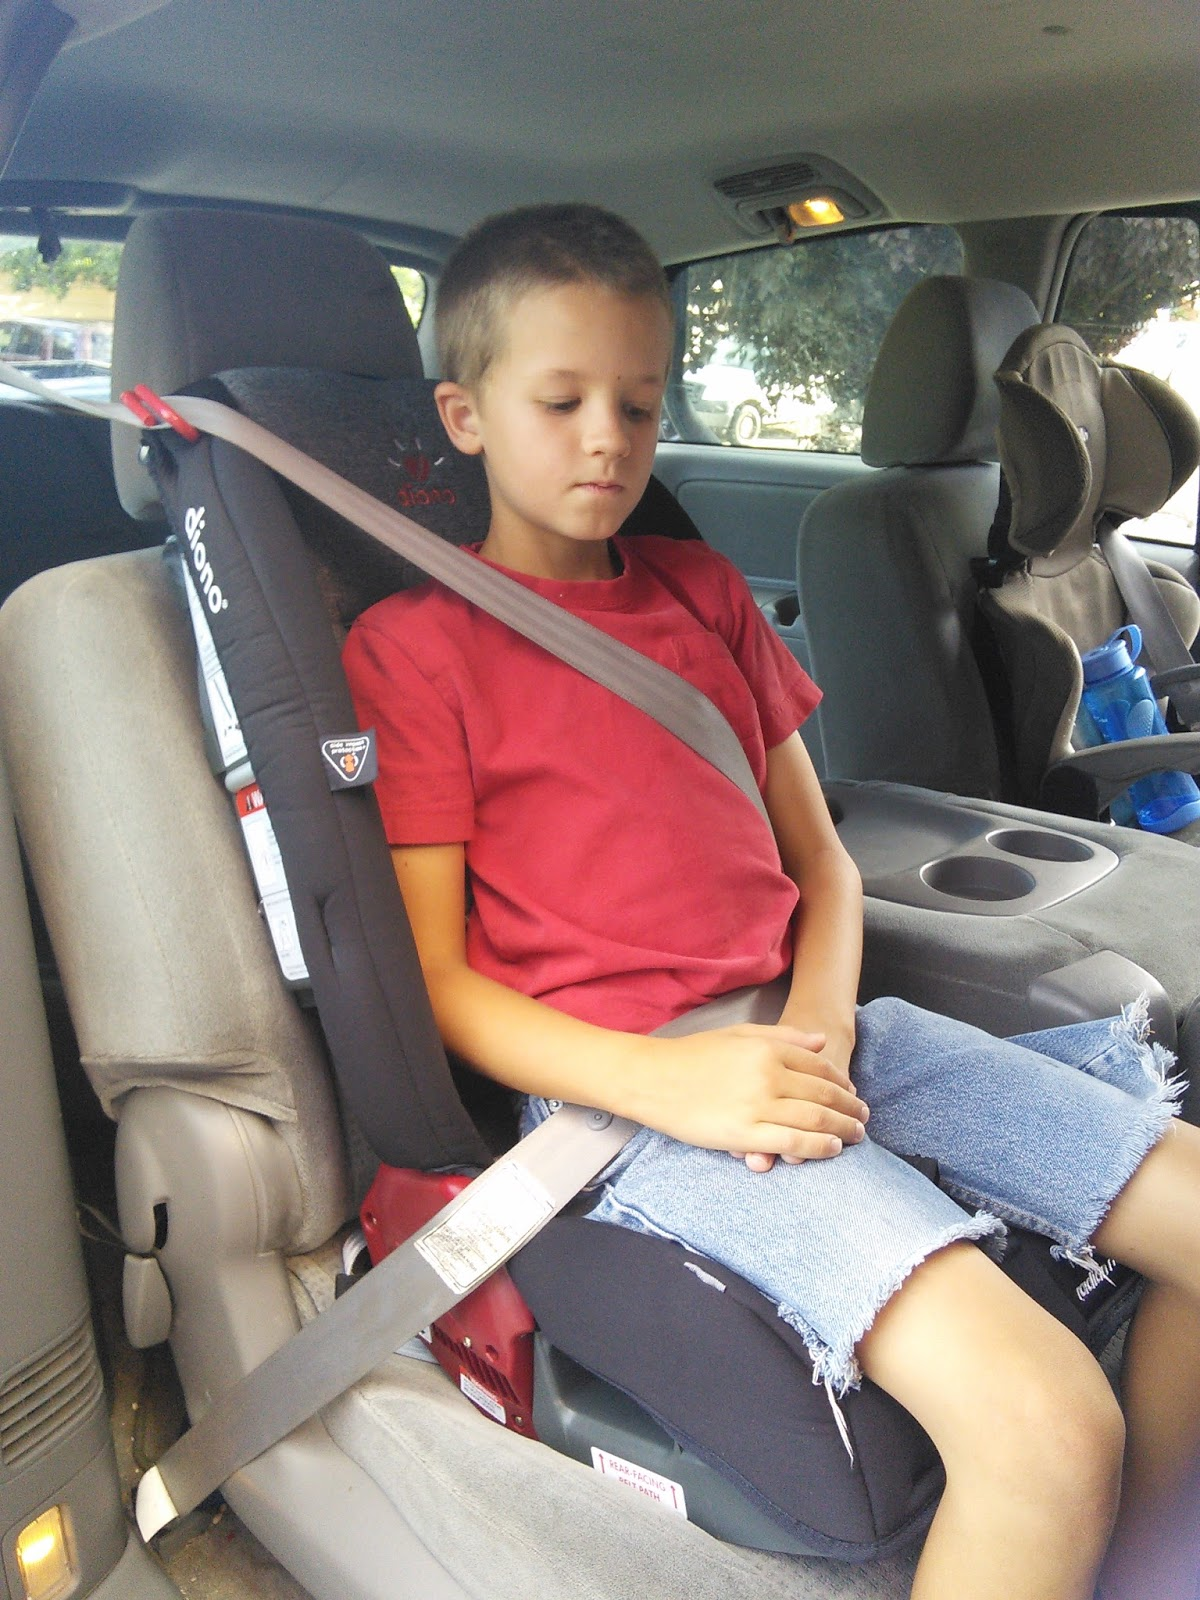 How To Keep Car Seat Safe In Older Car